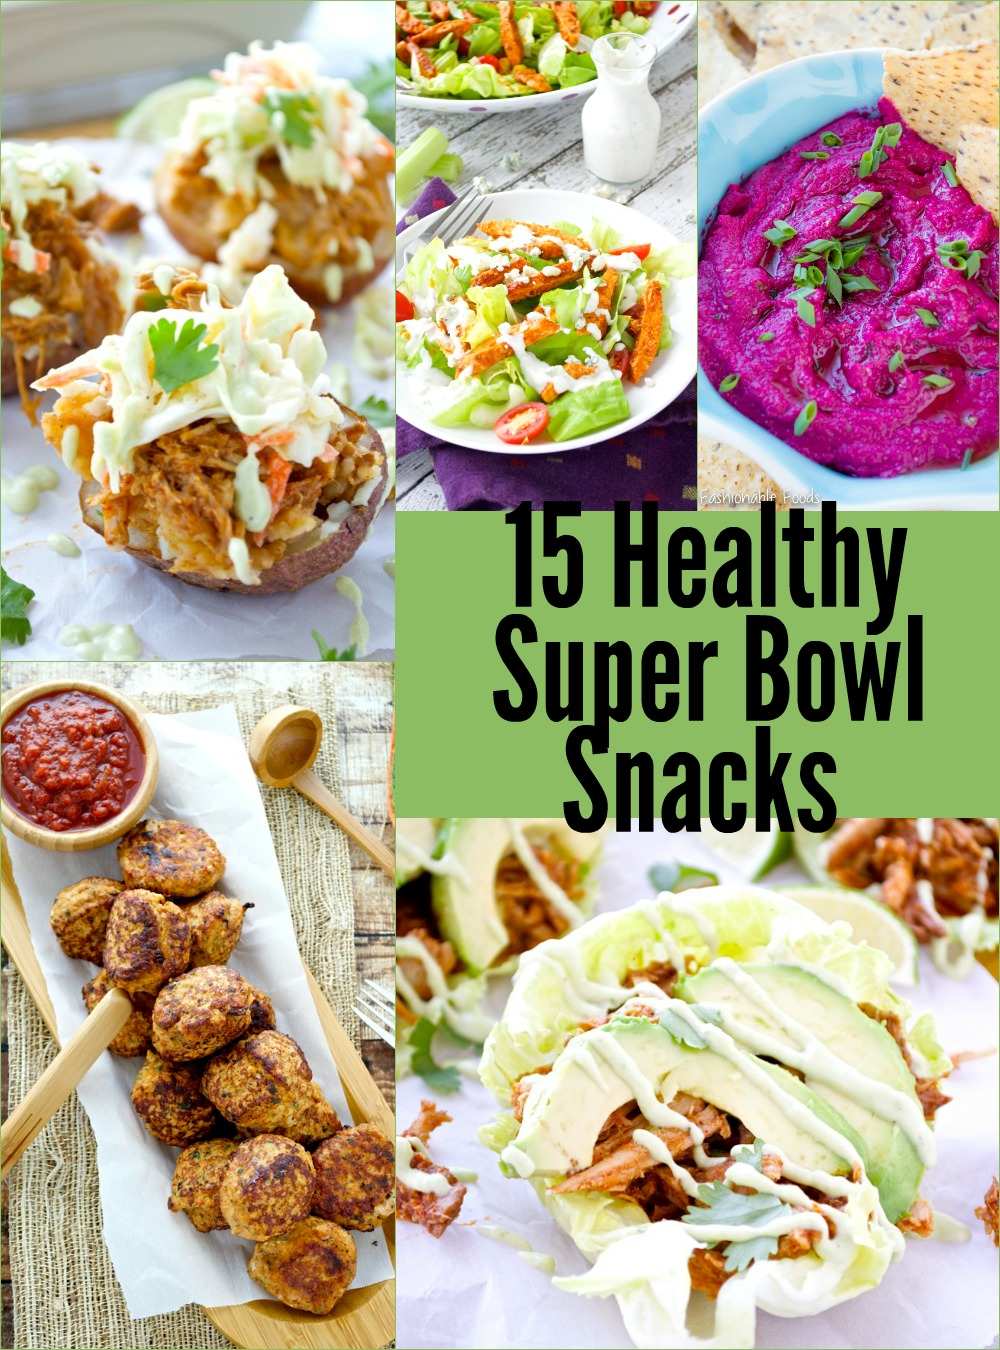 Healthy super bowl snacks fashionable foods healthy super bowl snacks forumfinder Choice Image